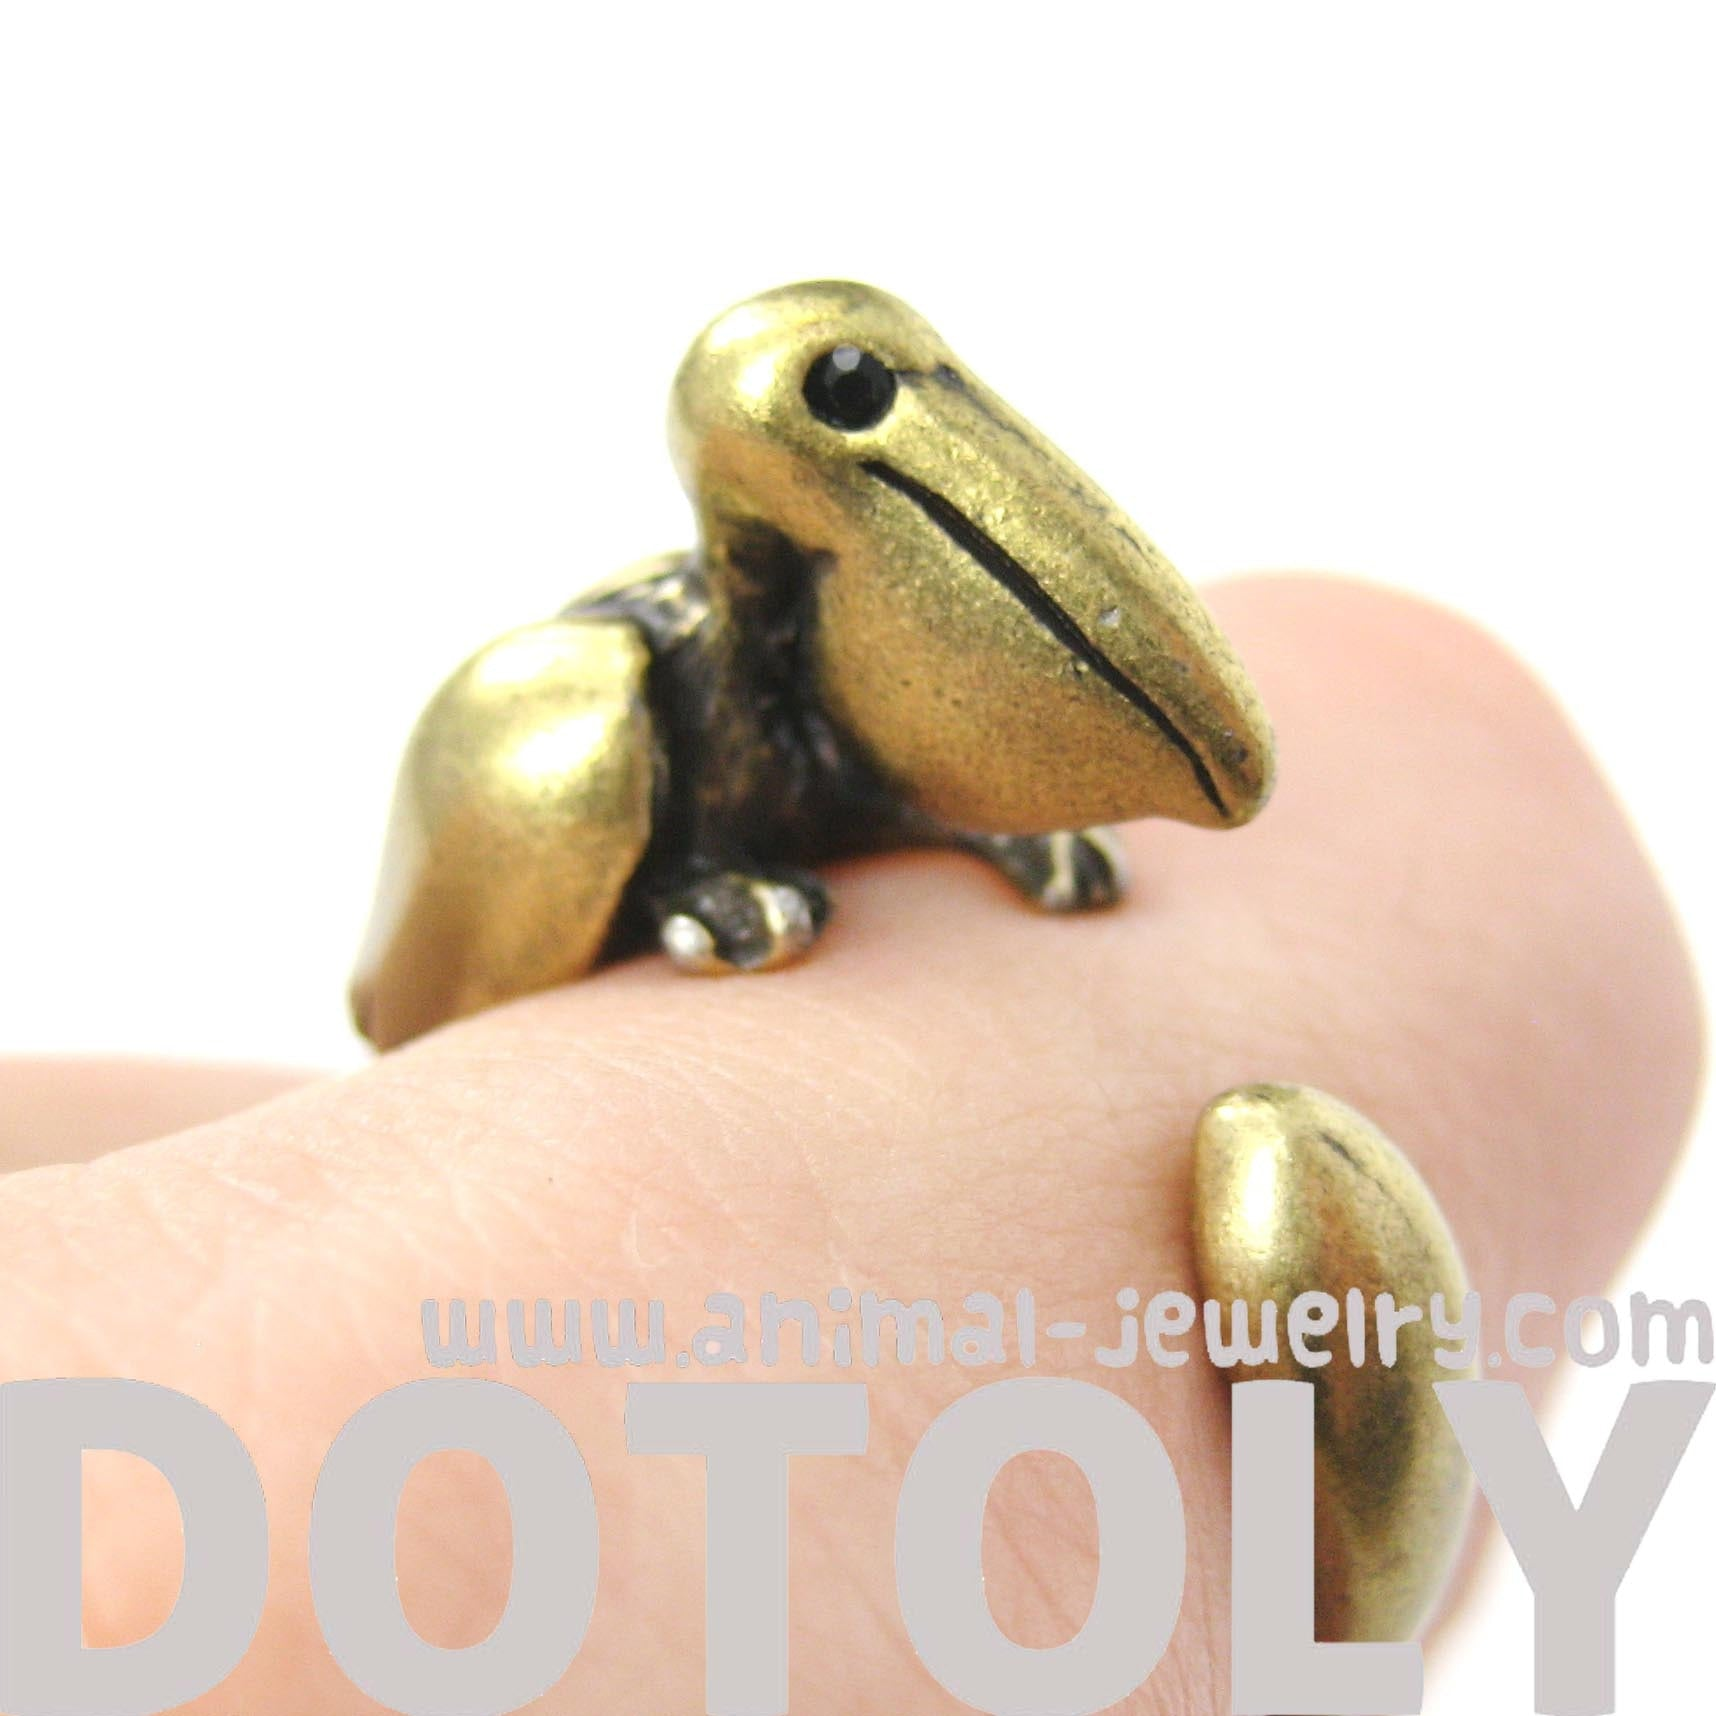 pelican-bird-shaped-animal-wrap-around-ring-in-brass-sizes-4-to-9-available